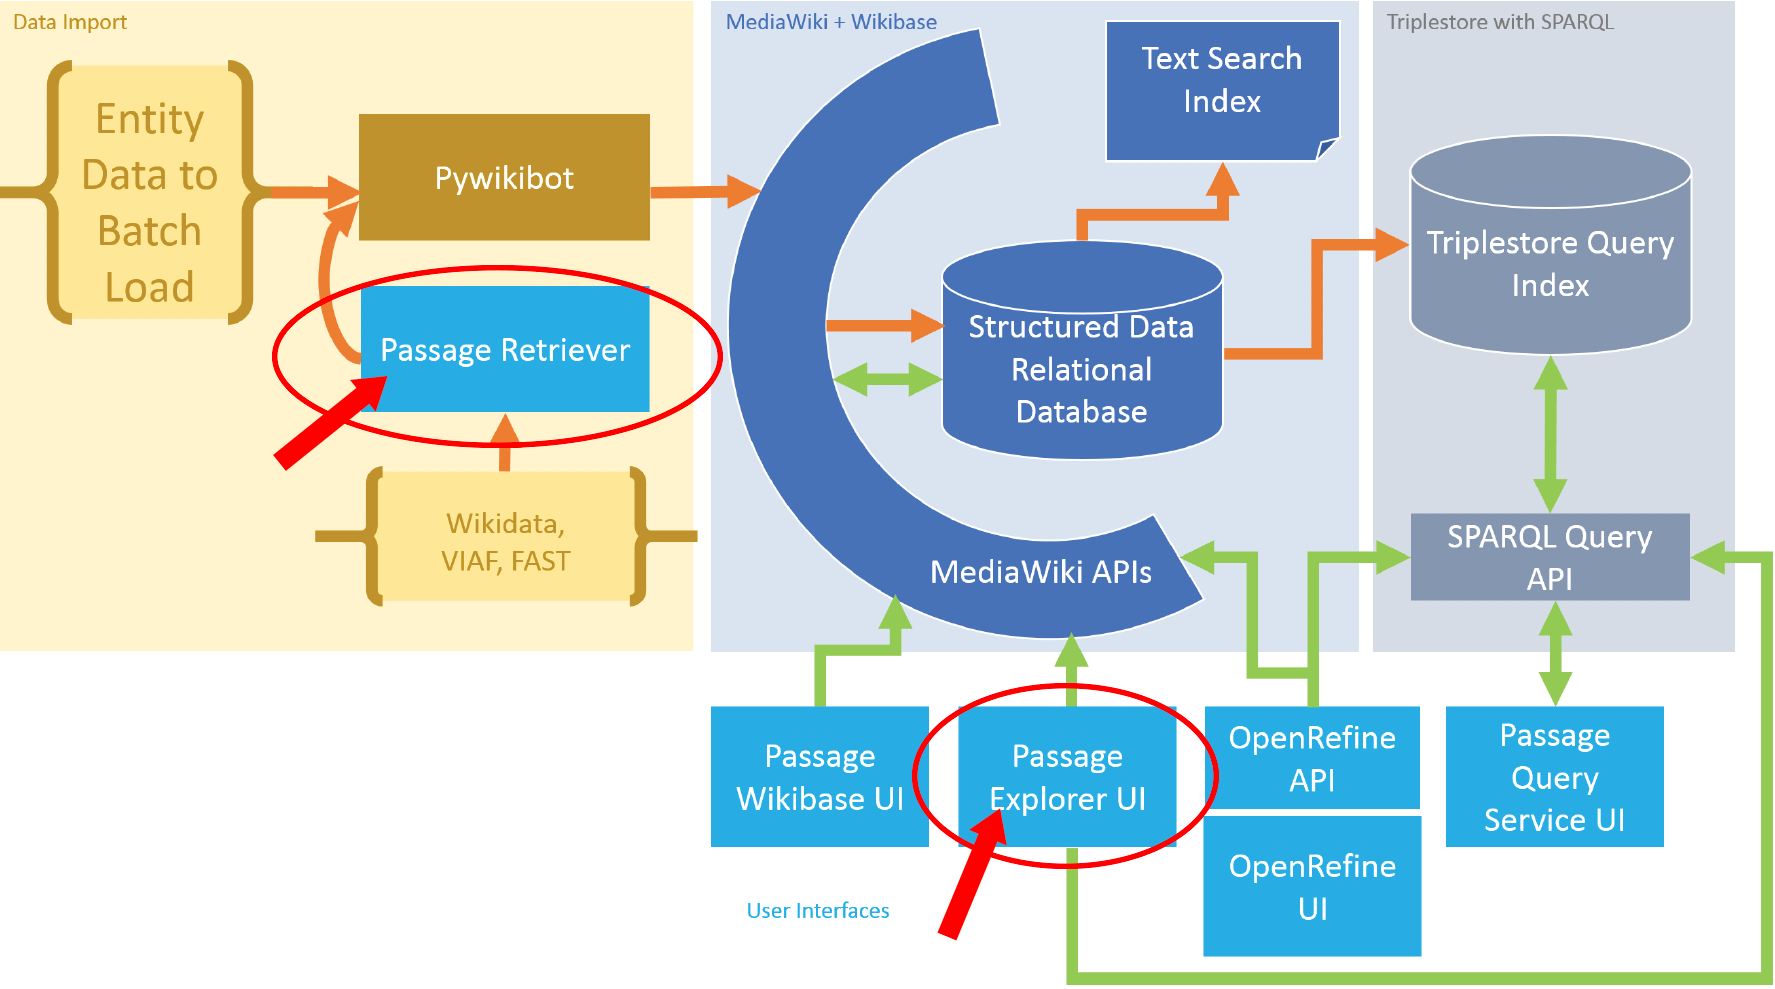 Figure 5: Data import with Pywikibot and the Passage Retriever